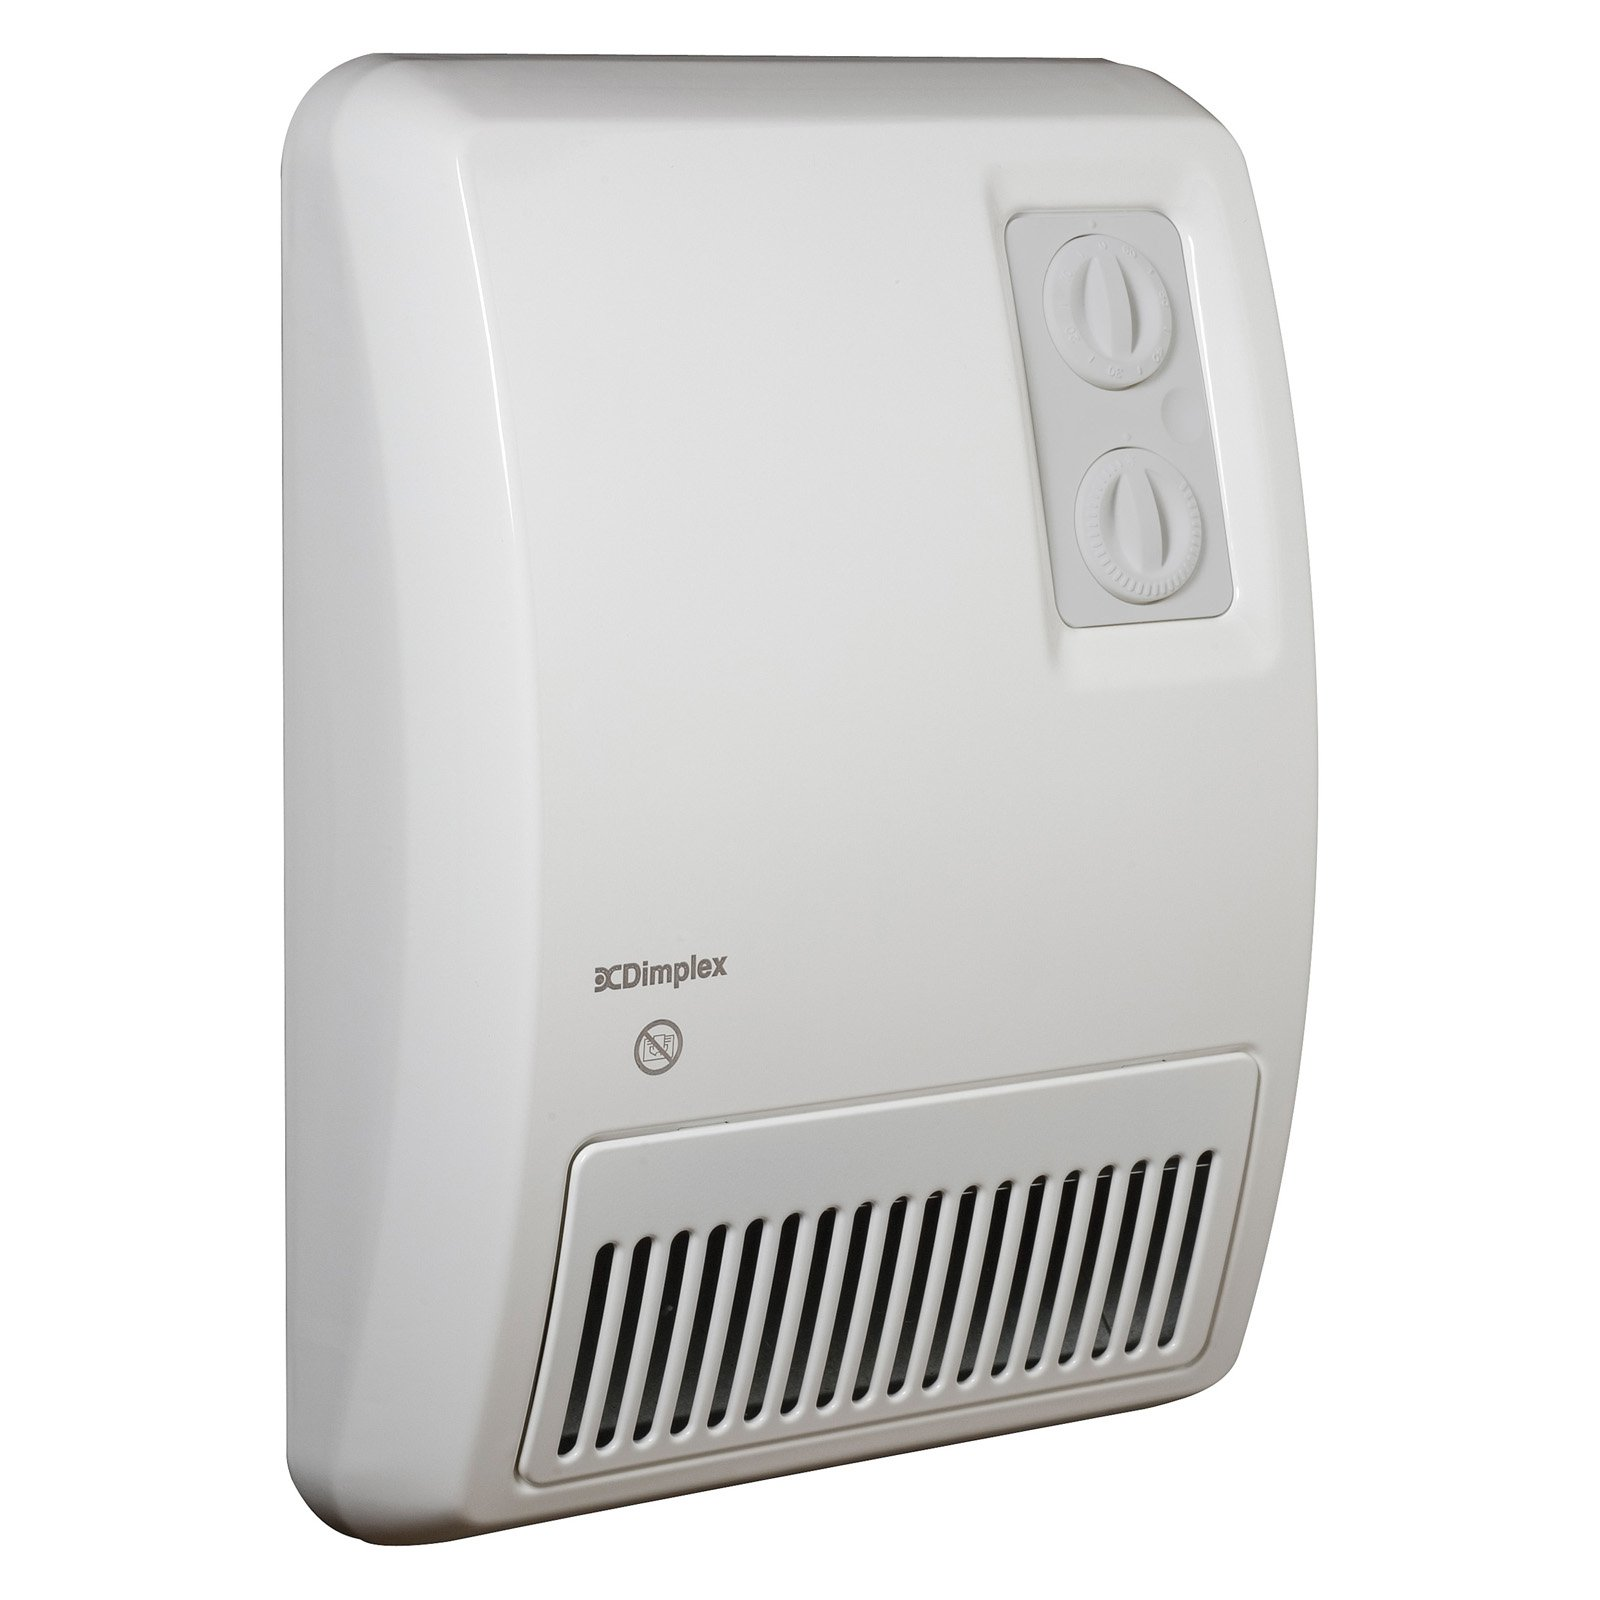 Awesome DIMPLEX EF12 Bathroom Fan Heater,2000W,240/208V G2109436   Walmart.com